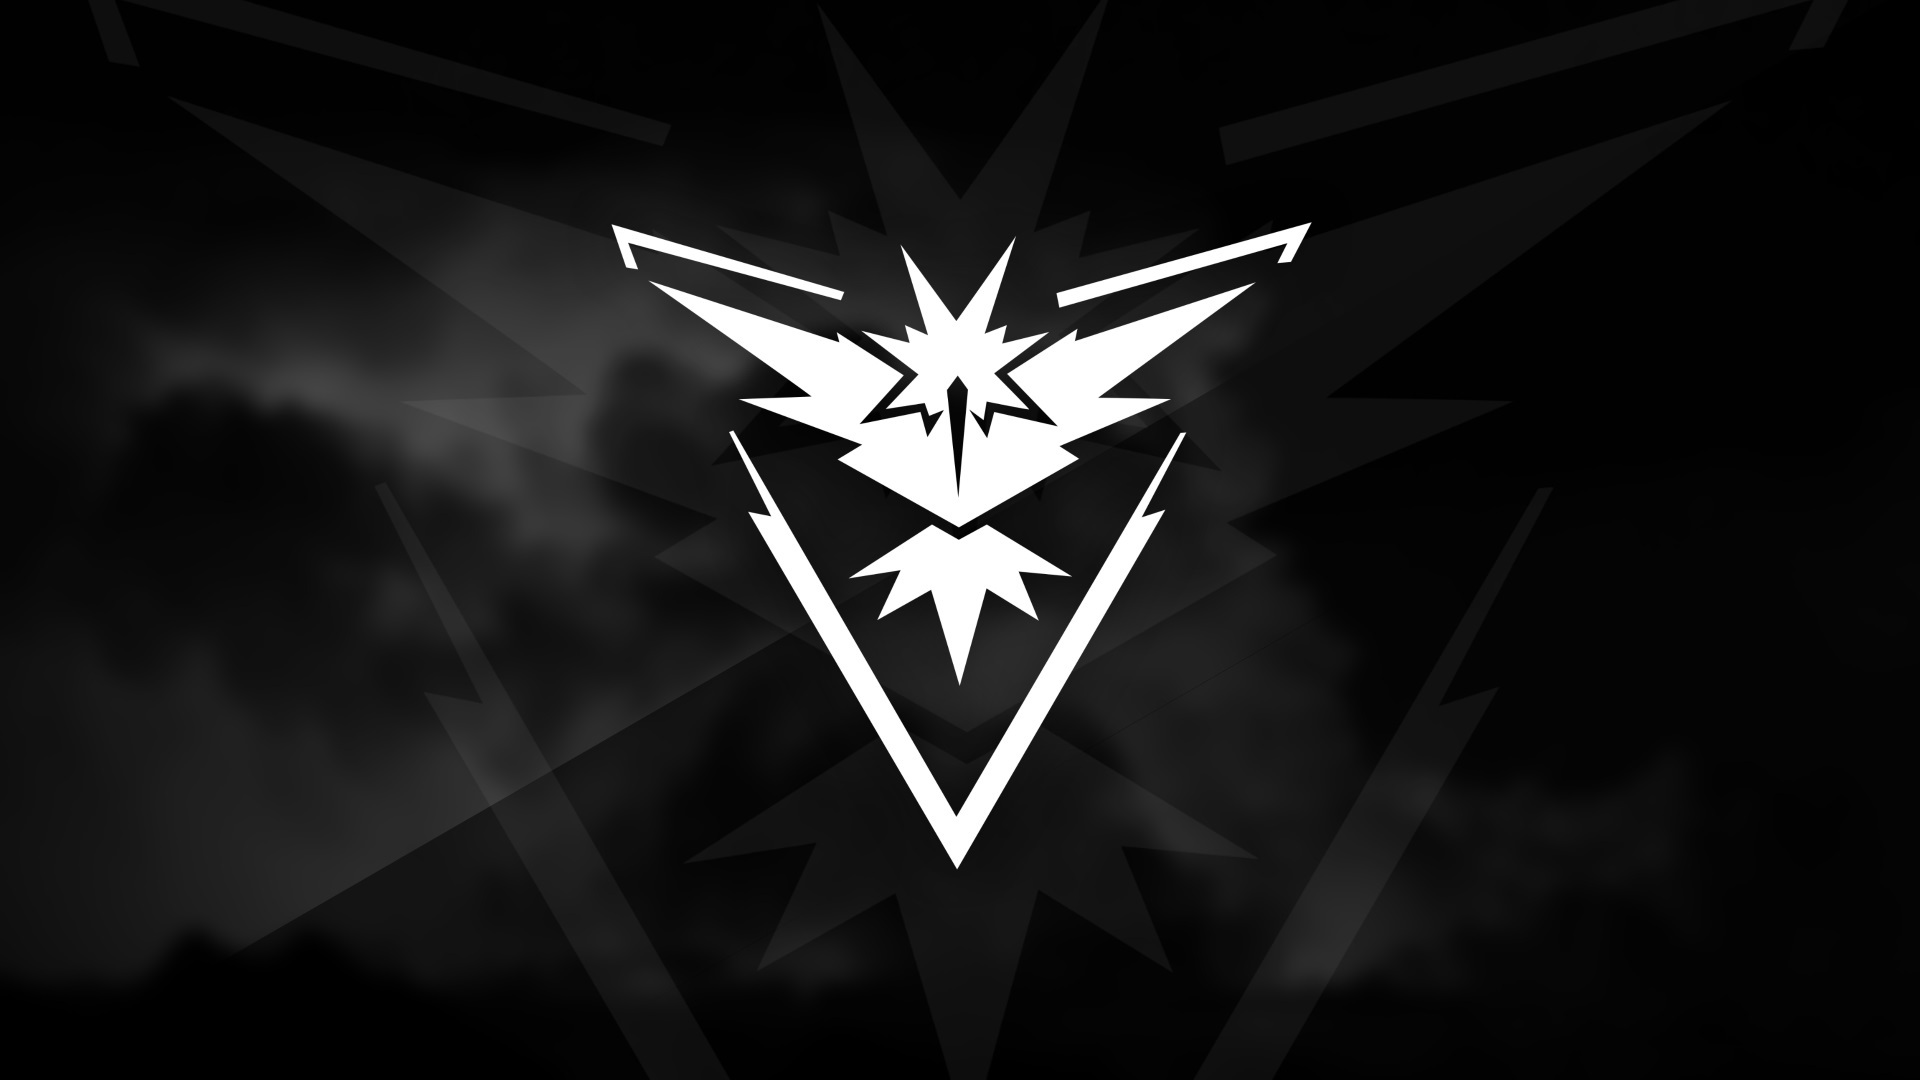 4k Wallpaper Wallpaper By Gstblack: Team Instinct In Black And White Full HD Wallpaper And